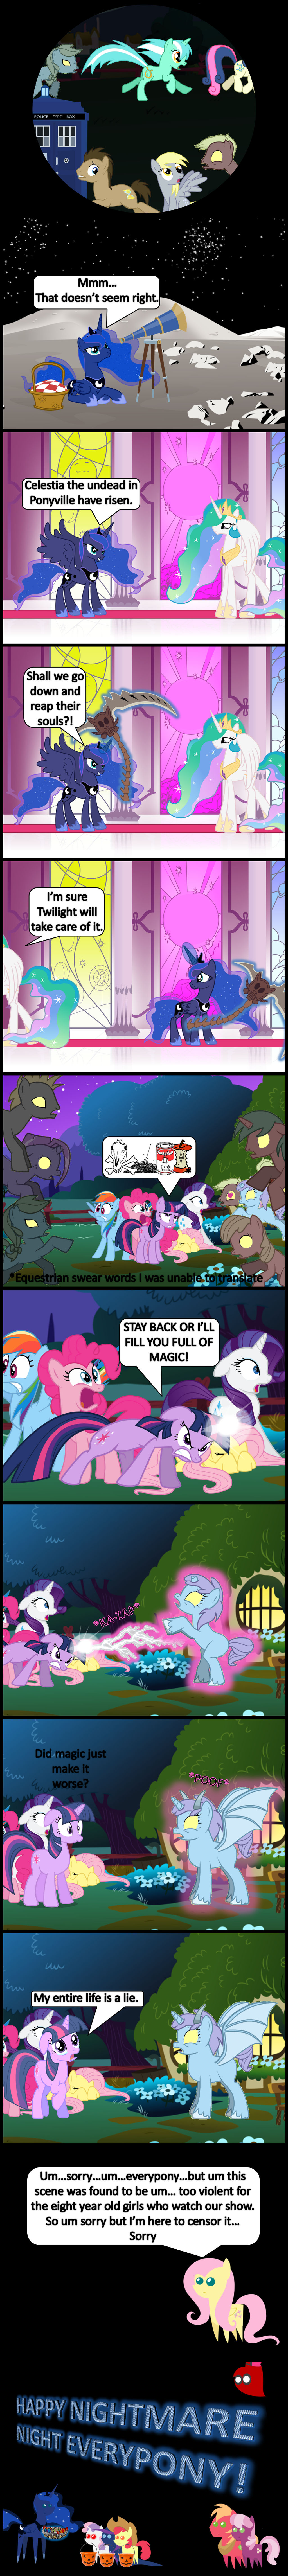 9 and 10 Nightmare Night Special